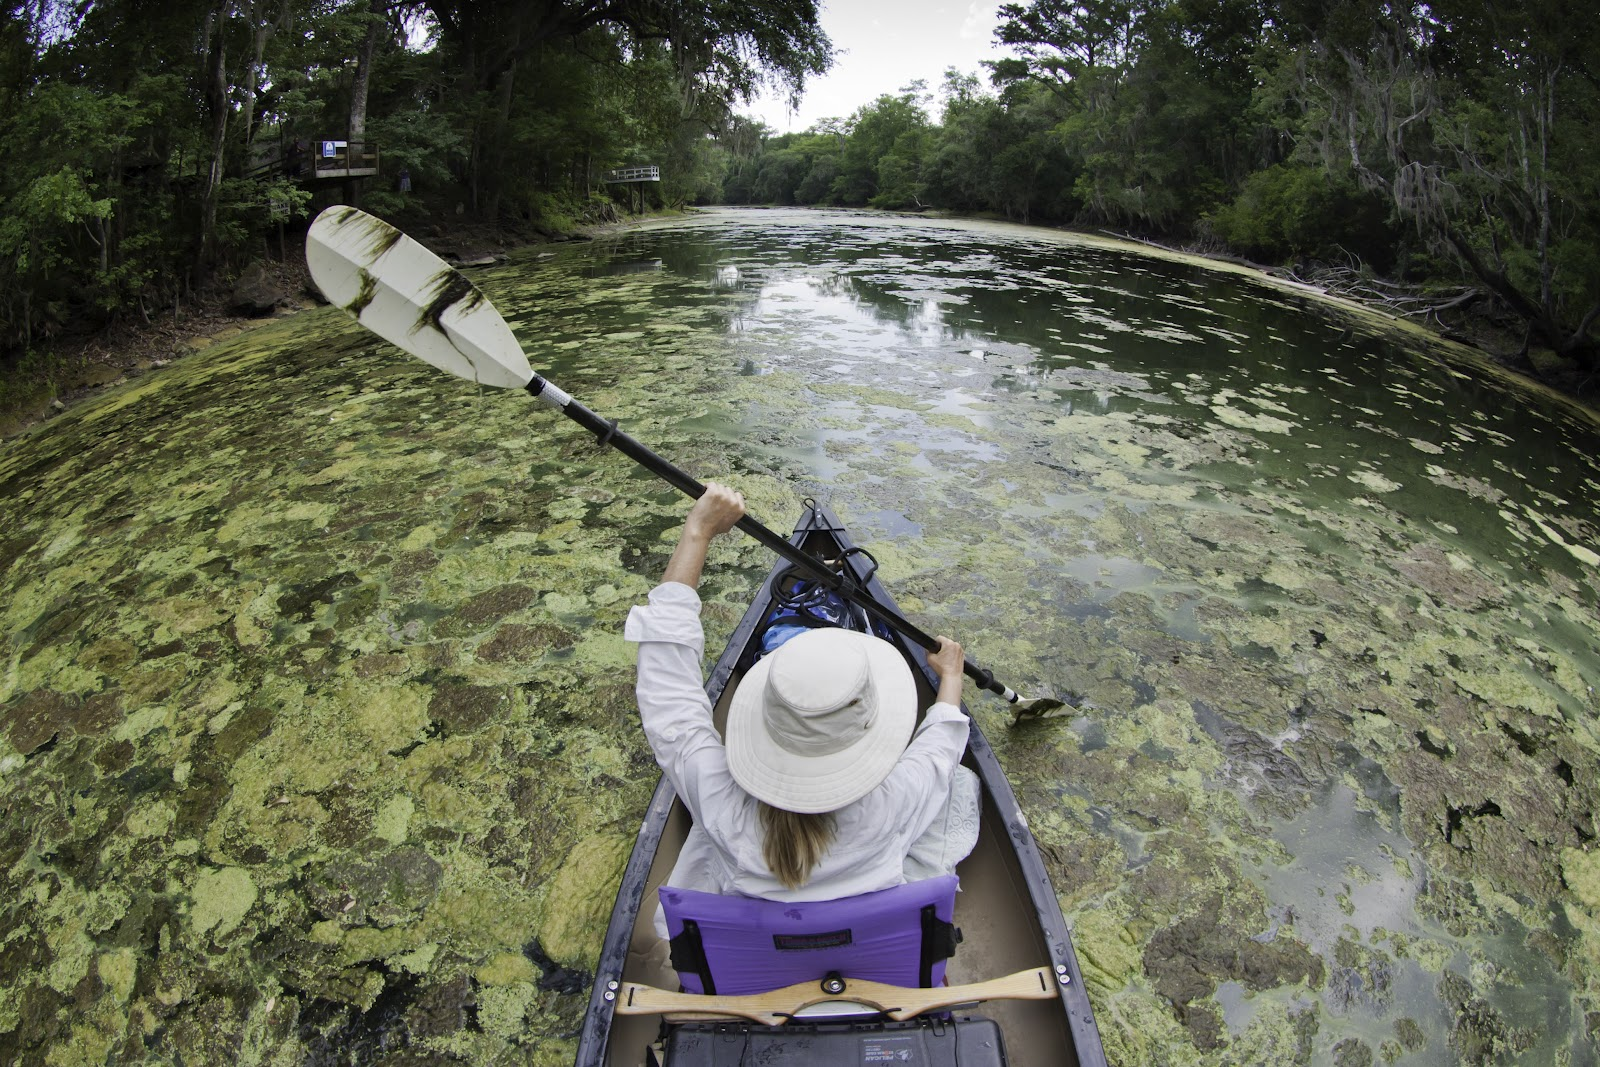 Algae blooms from excess nutrients in the waterways are common and becoming more common in developed countries. - Image Credit: John Moran/EPA